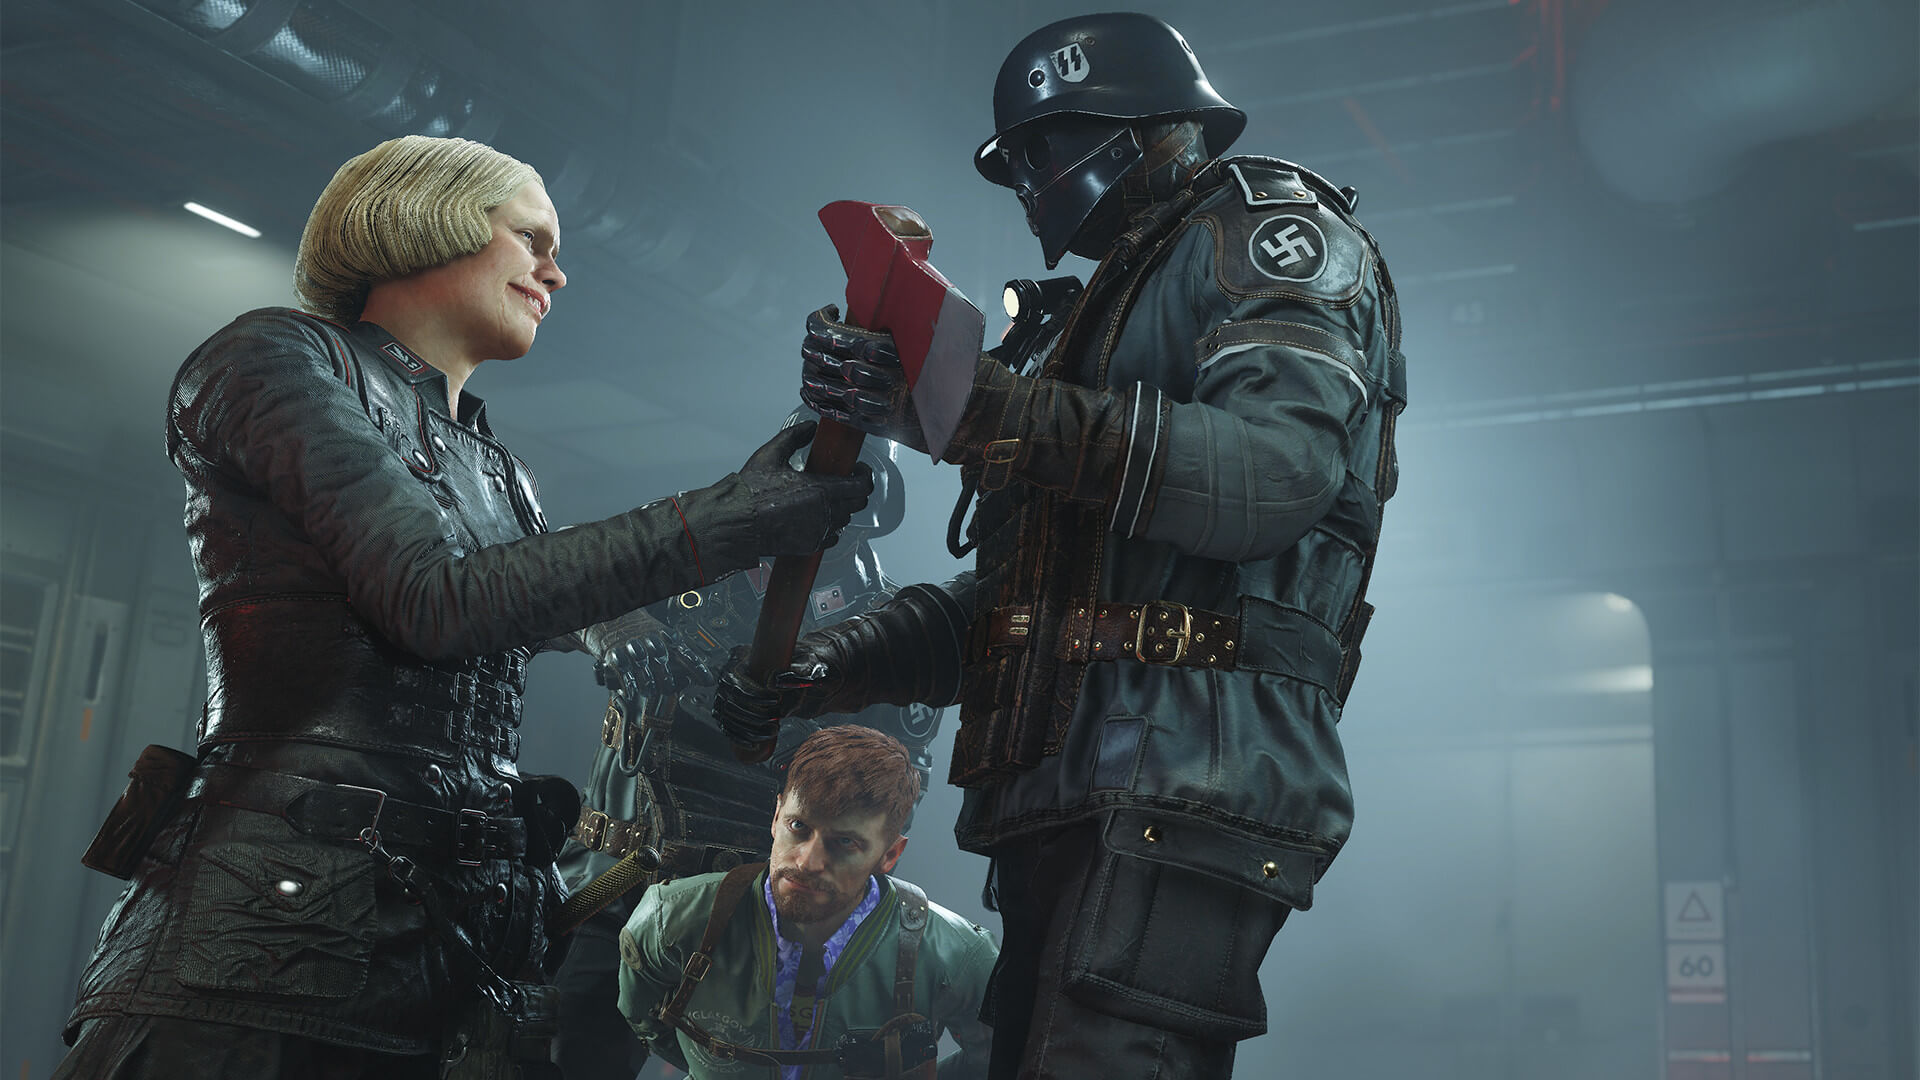 Benchmarks of Wolfenstein II with RTX Adaptive Shading show performance boost